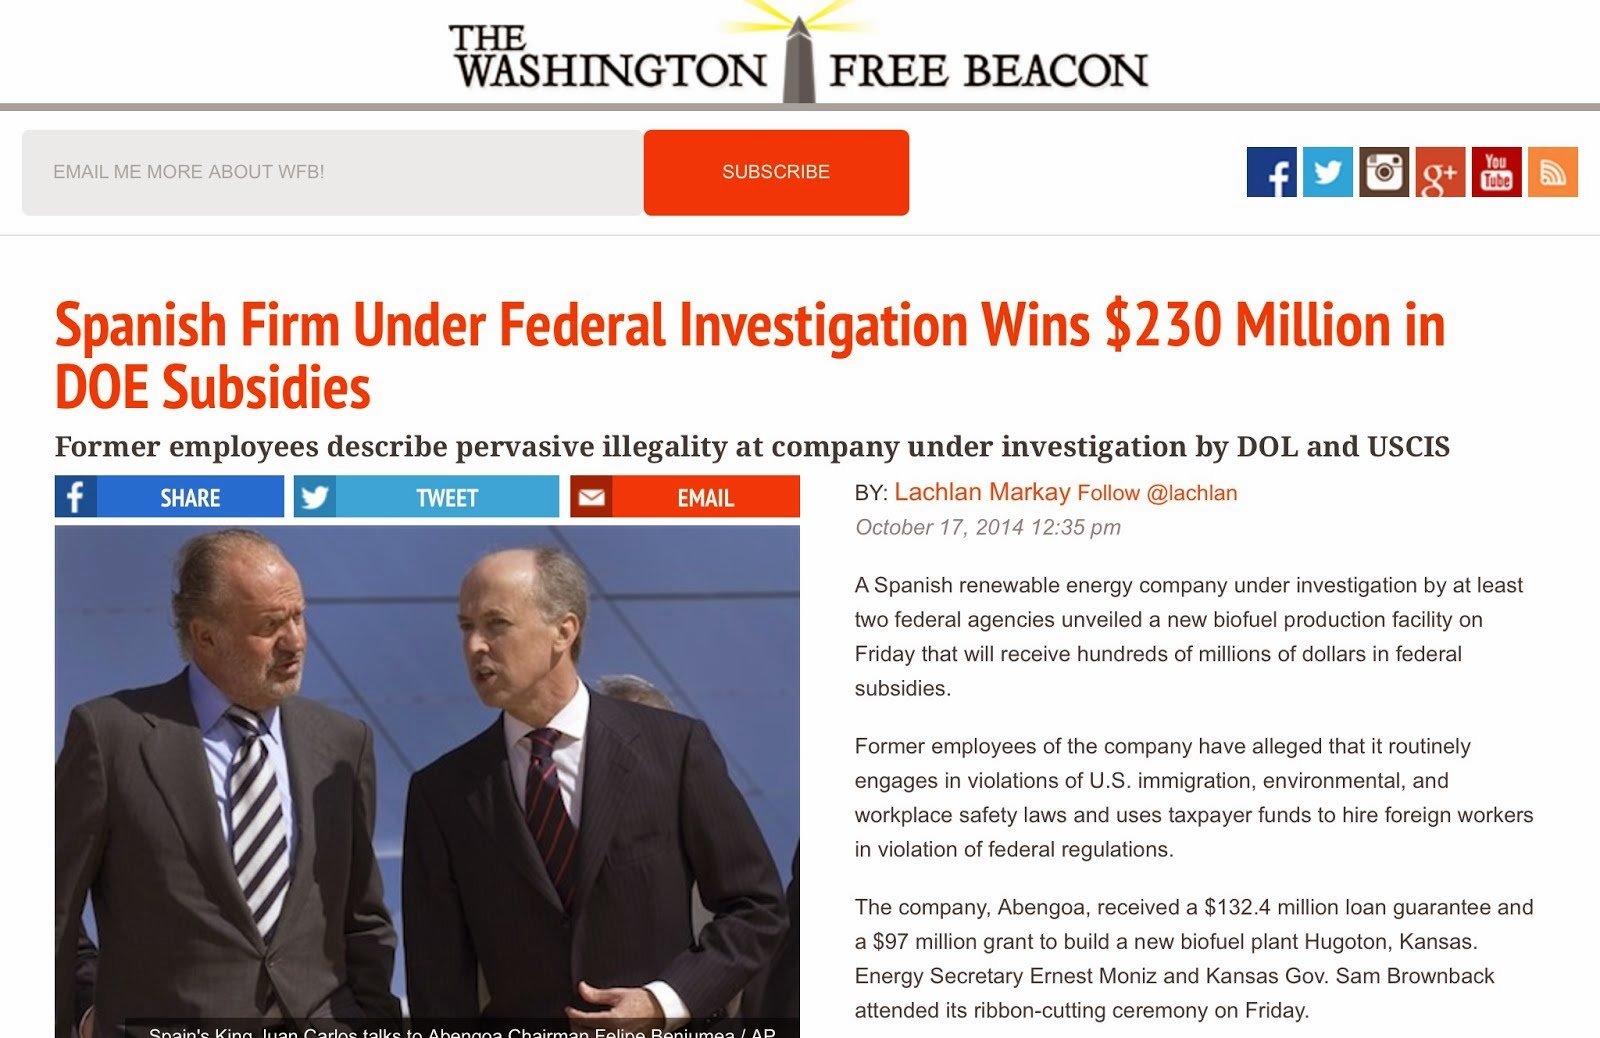 October 17, 2014: Washington Free Beacon Exposes Abengoa Again